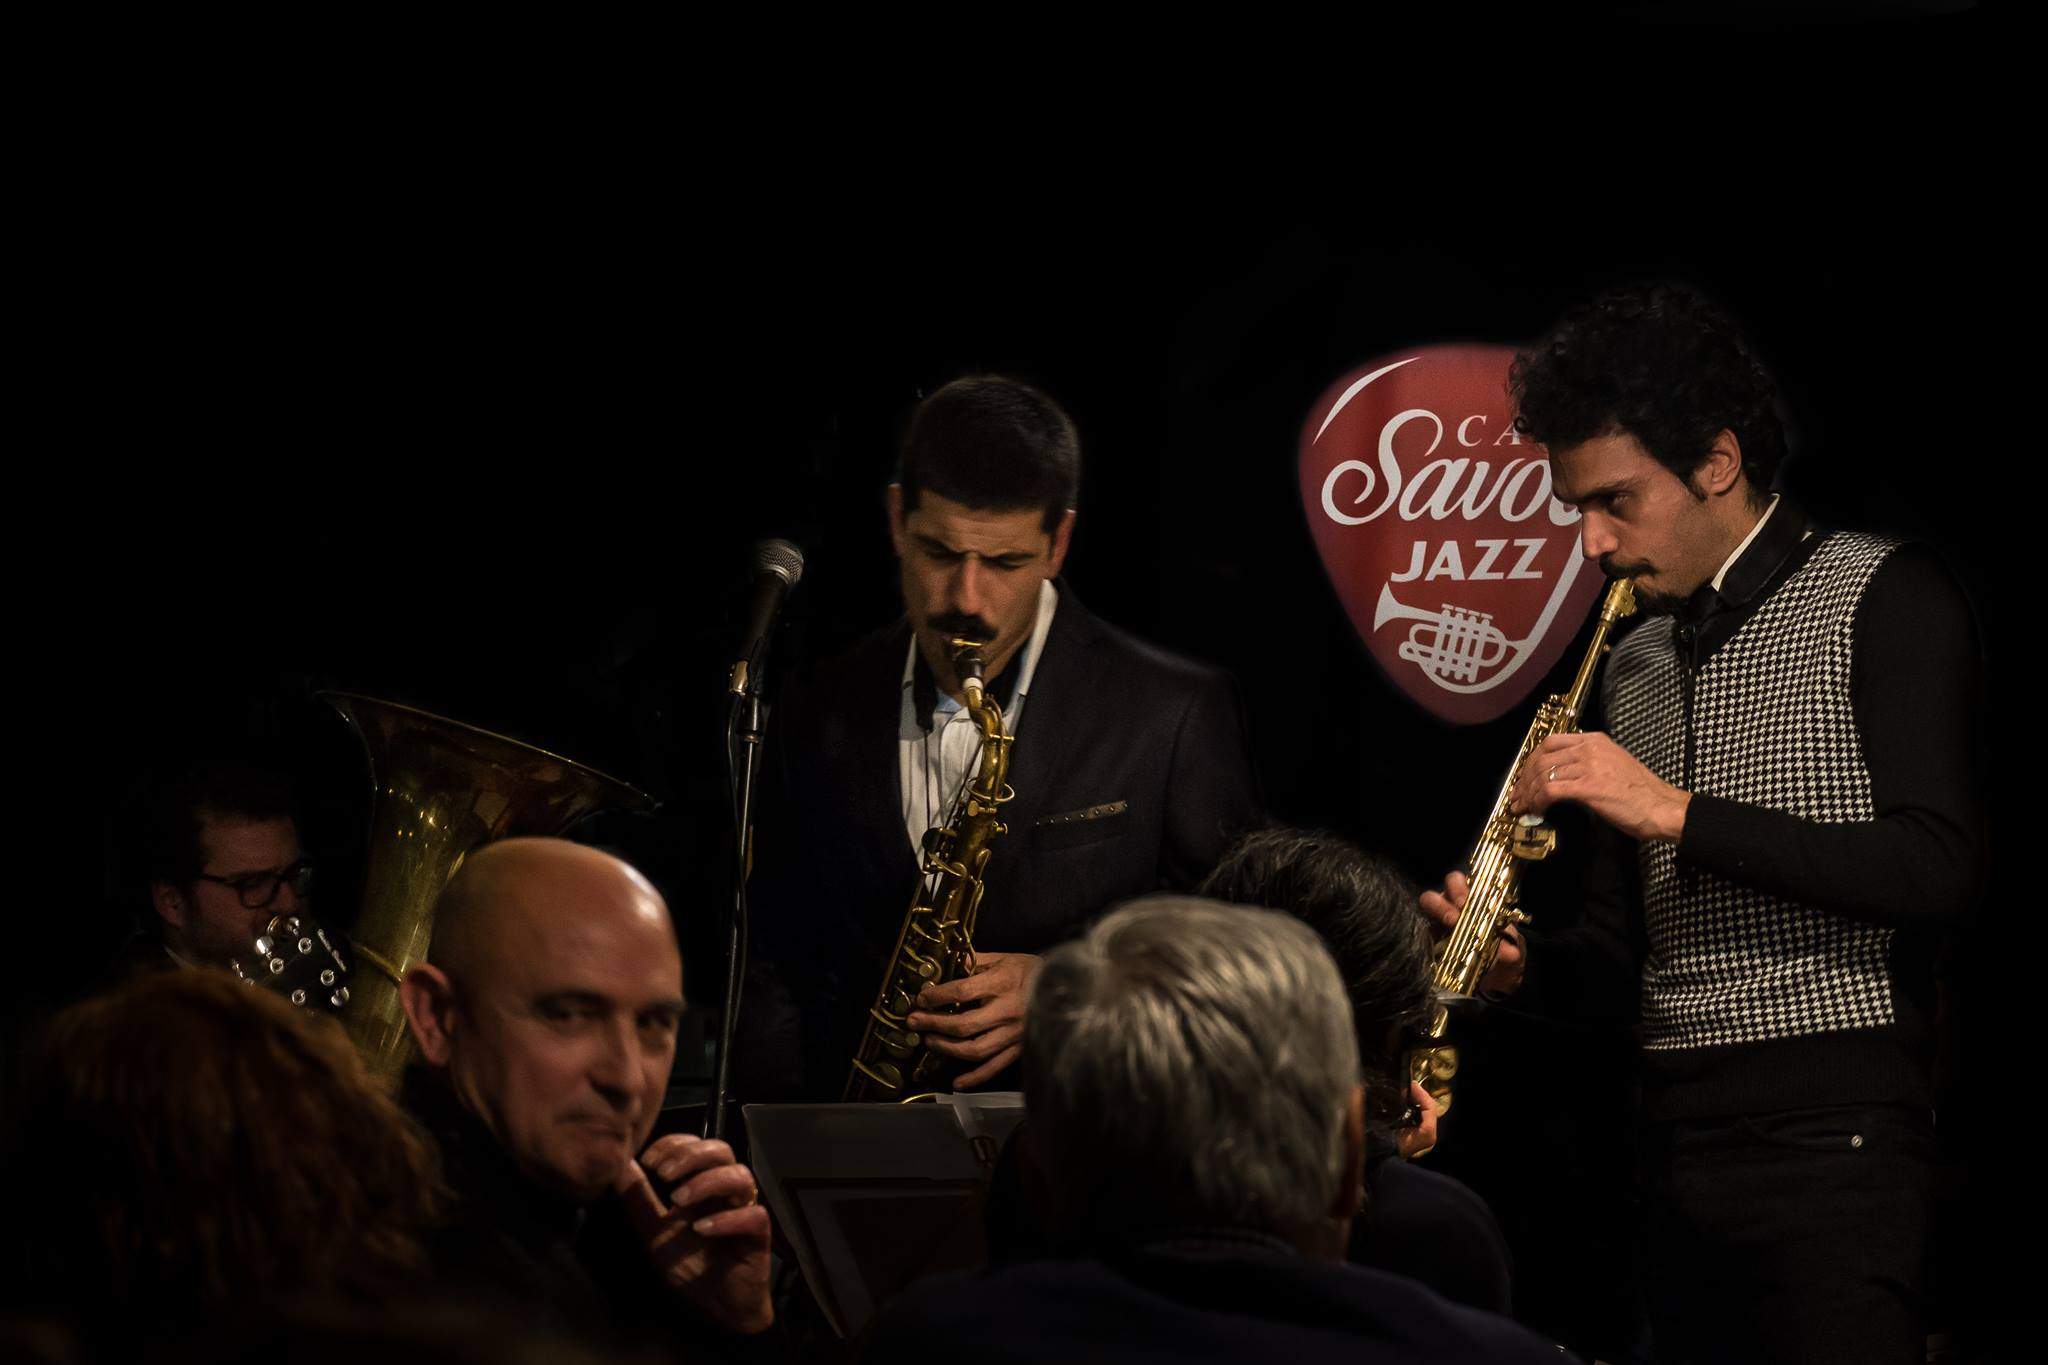 JazzFestival - Encerezados 16 - The Alley Stomper